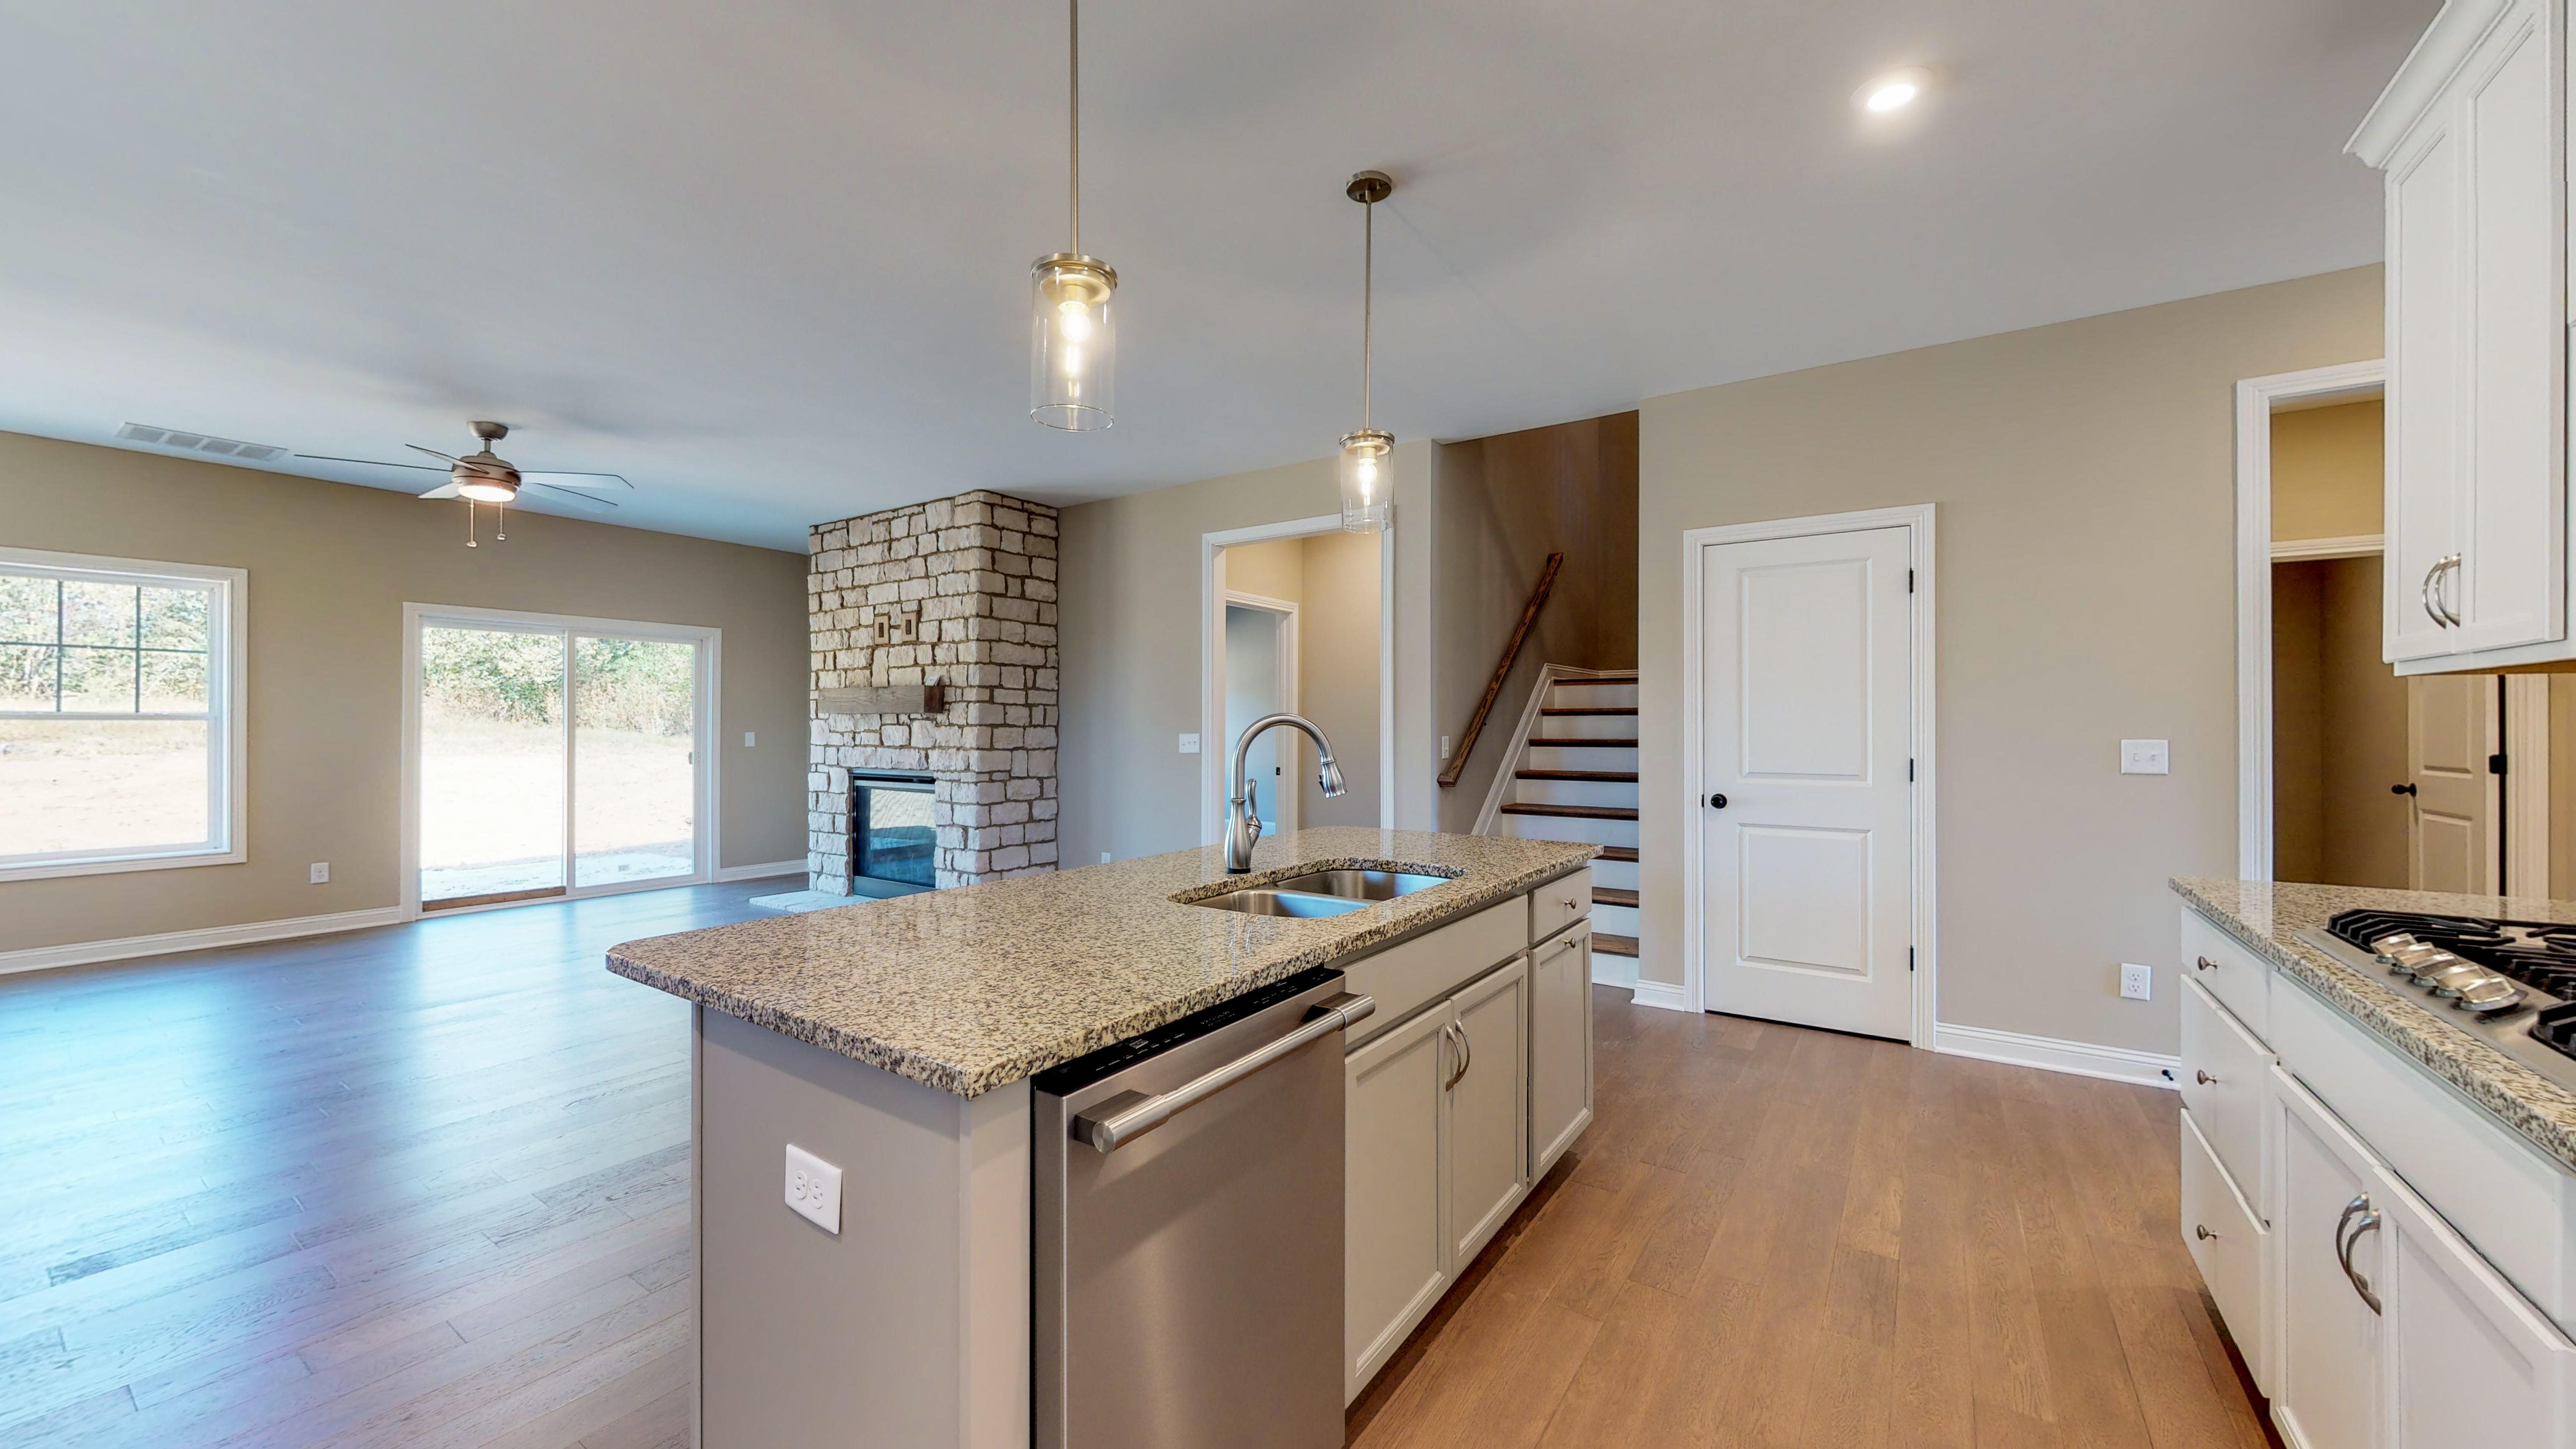 Kitchen featured in The Eleanor - 3rd Car By James Monroe Homes in Lexington, KY